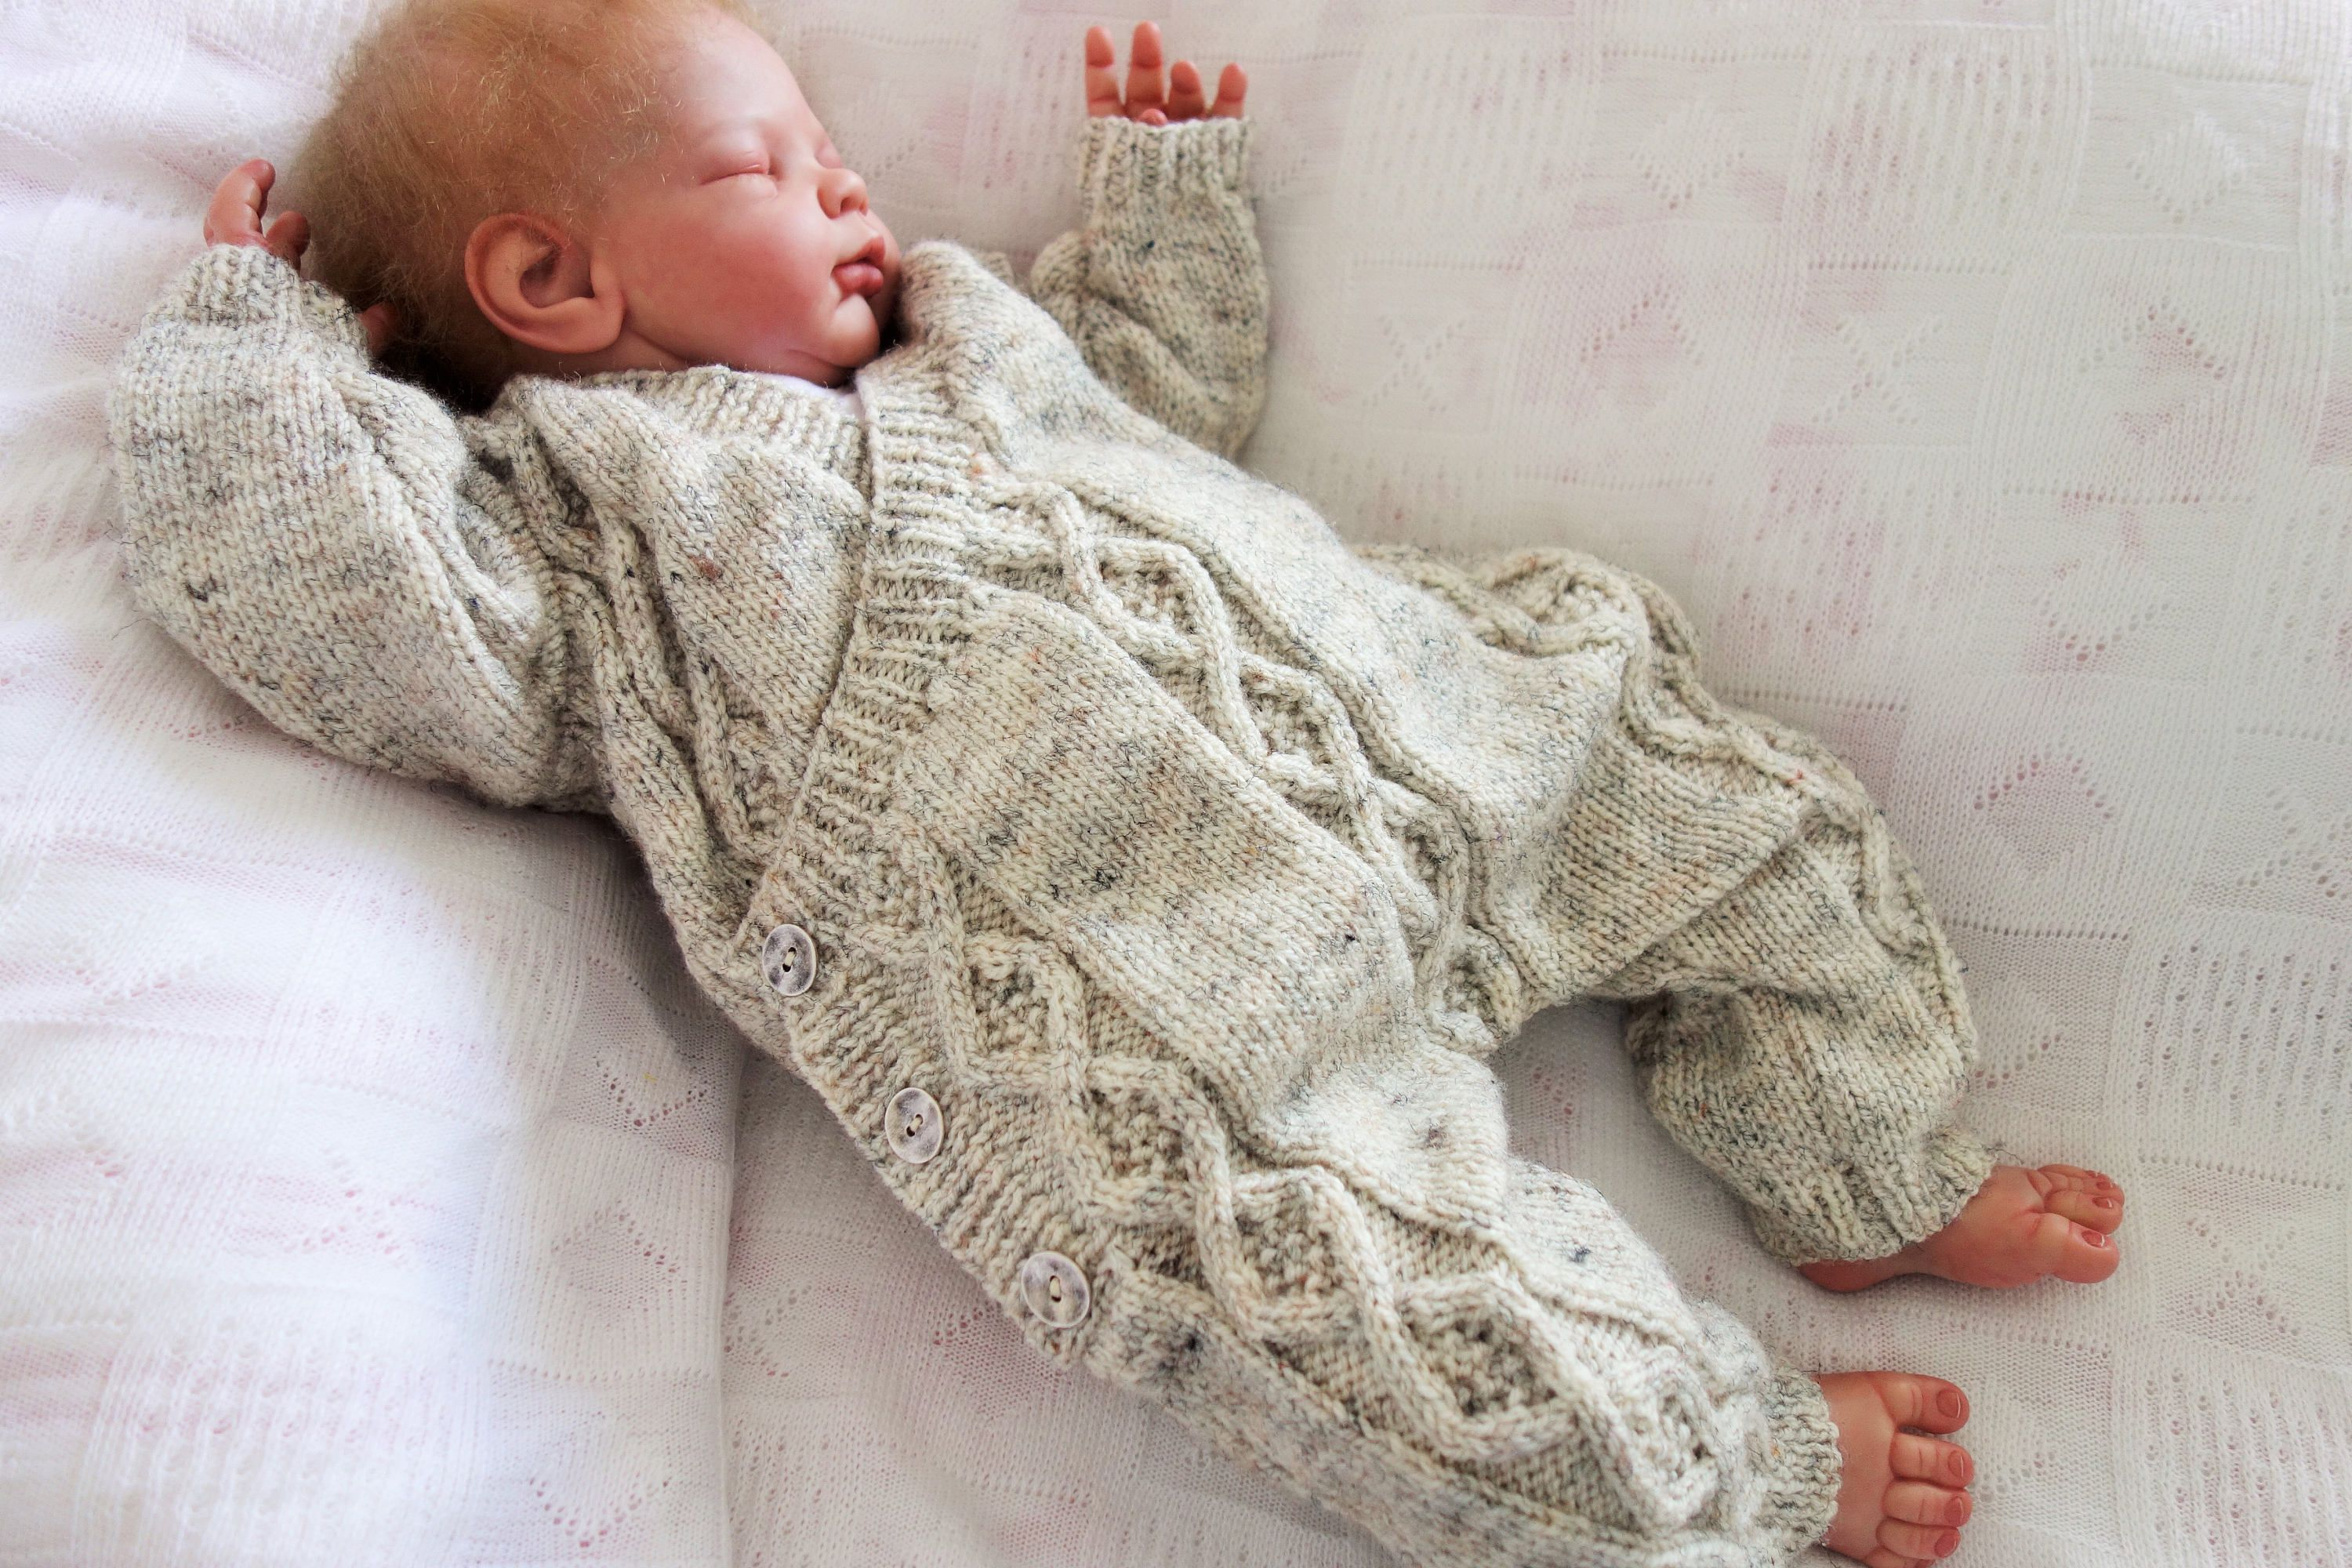 a6d5464d5 Hand knitted all-in-one romper suit onesie with cross over fronts